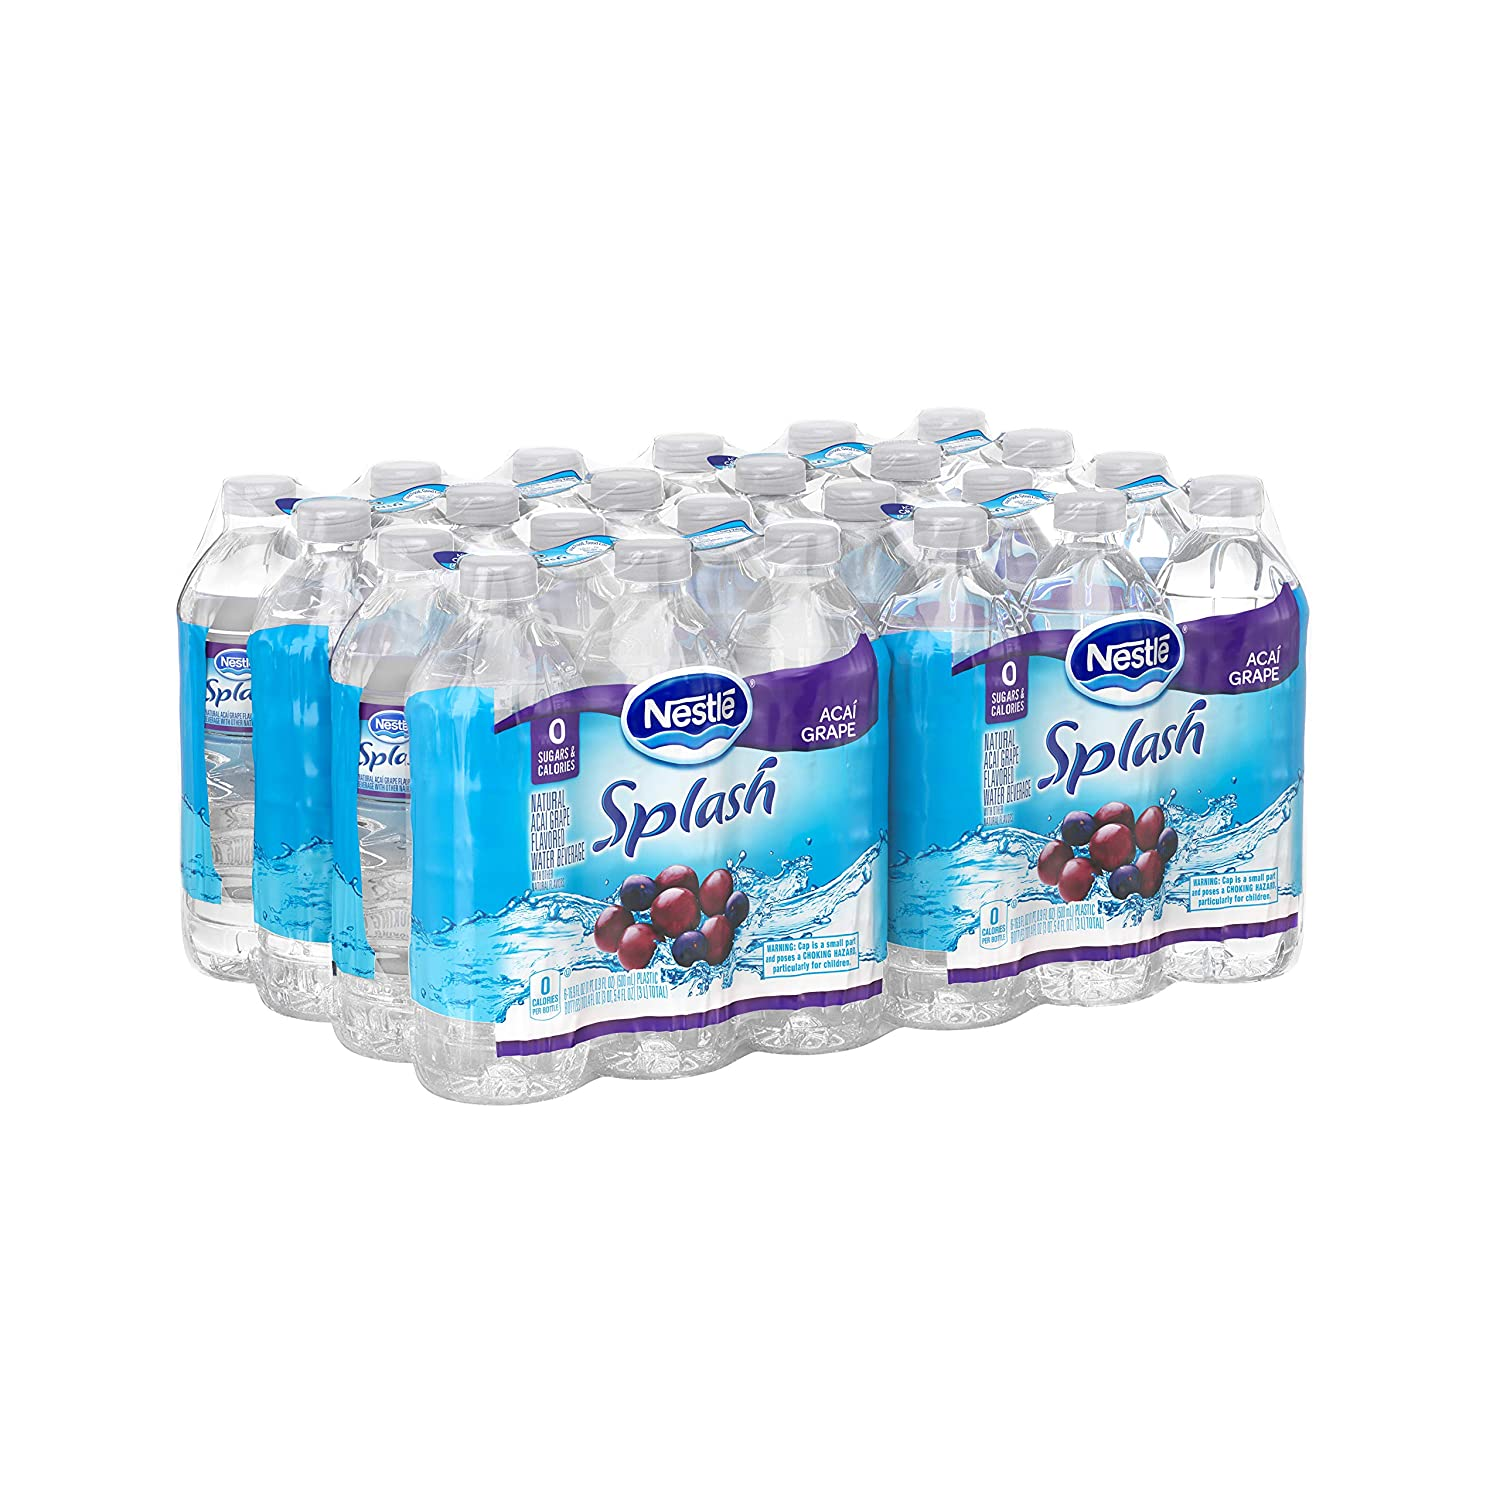 Nestle Water Nestle Pure Life Splash Flavored Water, Acai Grape, 16.9 oz